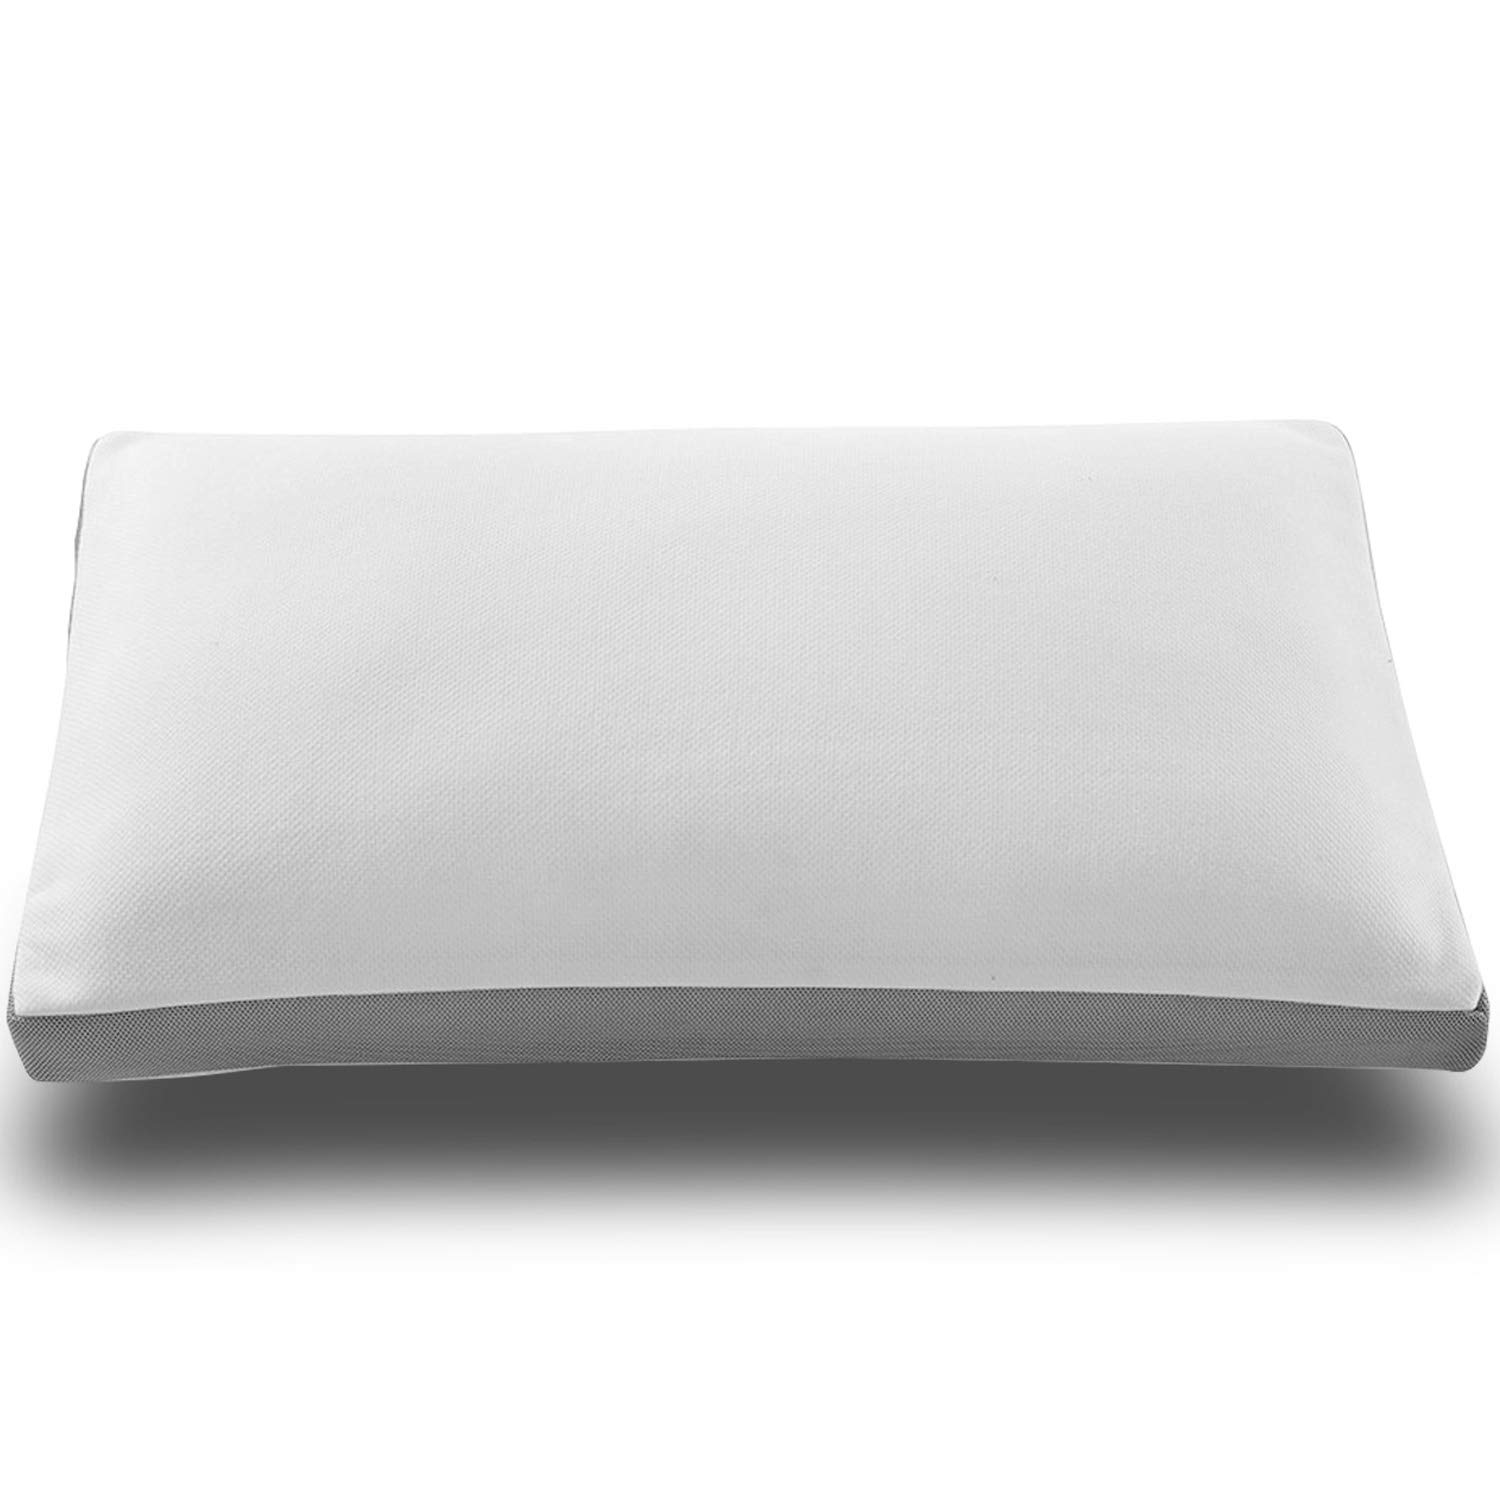 Noffa Shredded Memory Foam Pillow Neck Support Pain Relief Pillow with Washable Pillow Case, Adjustable Bed Pillow for Back and Side Sleeper, Queen Size